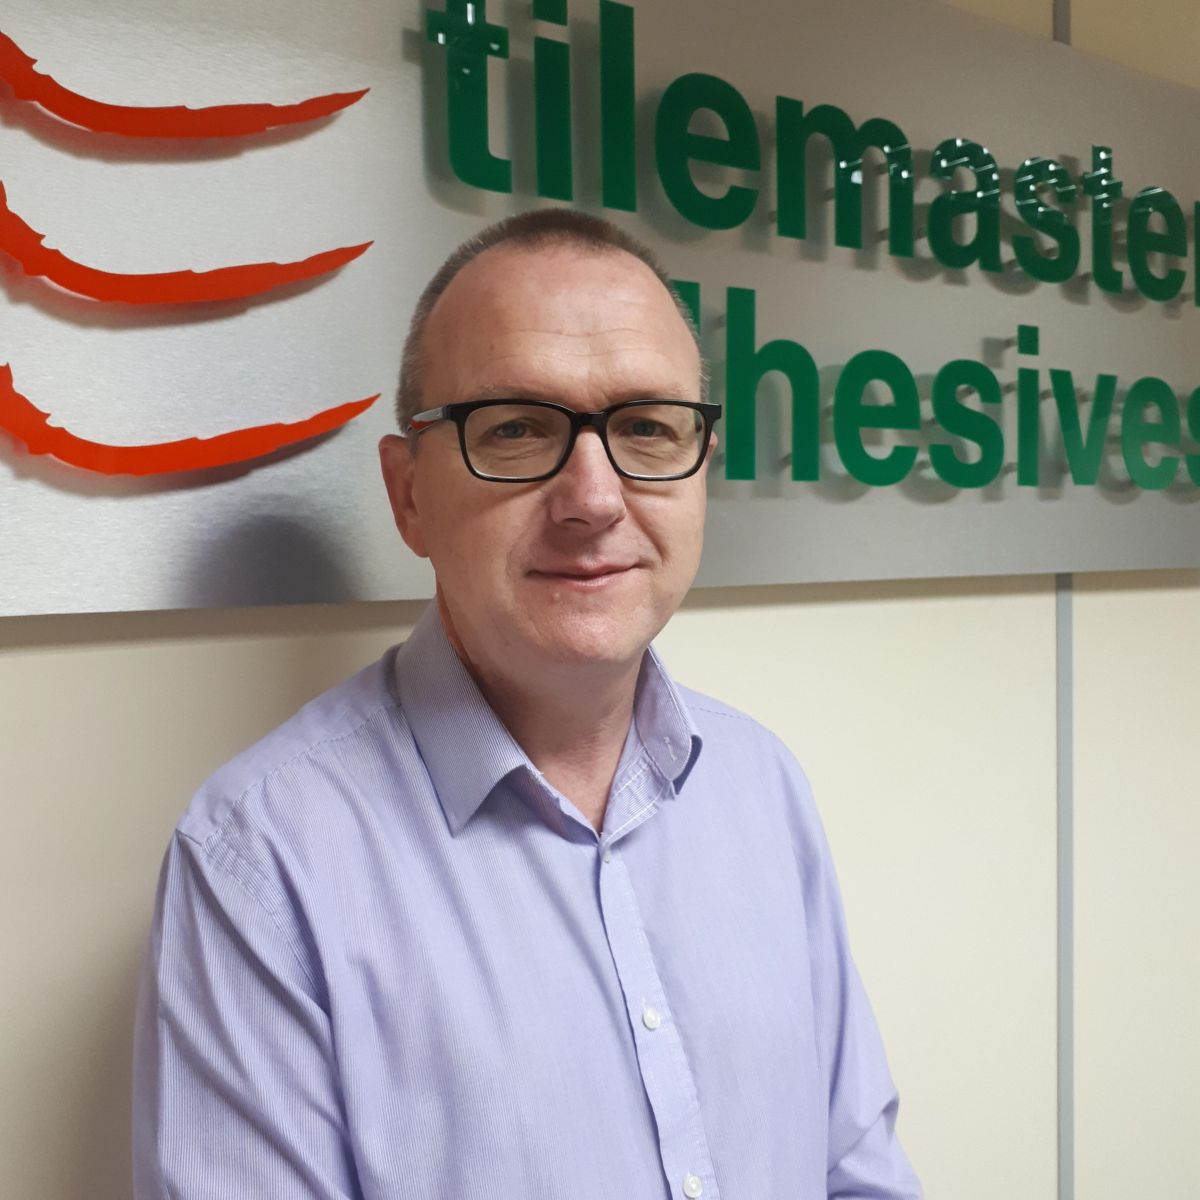 Lenny Morrow to represent Tilemaster Adhesives in Ireland